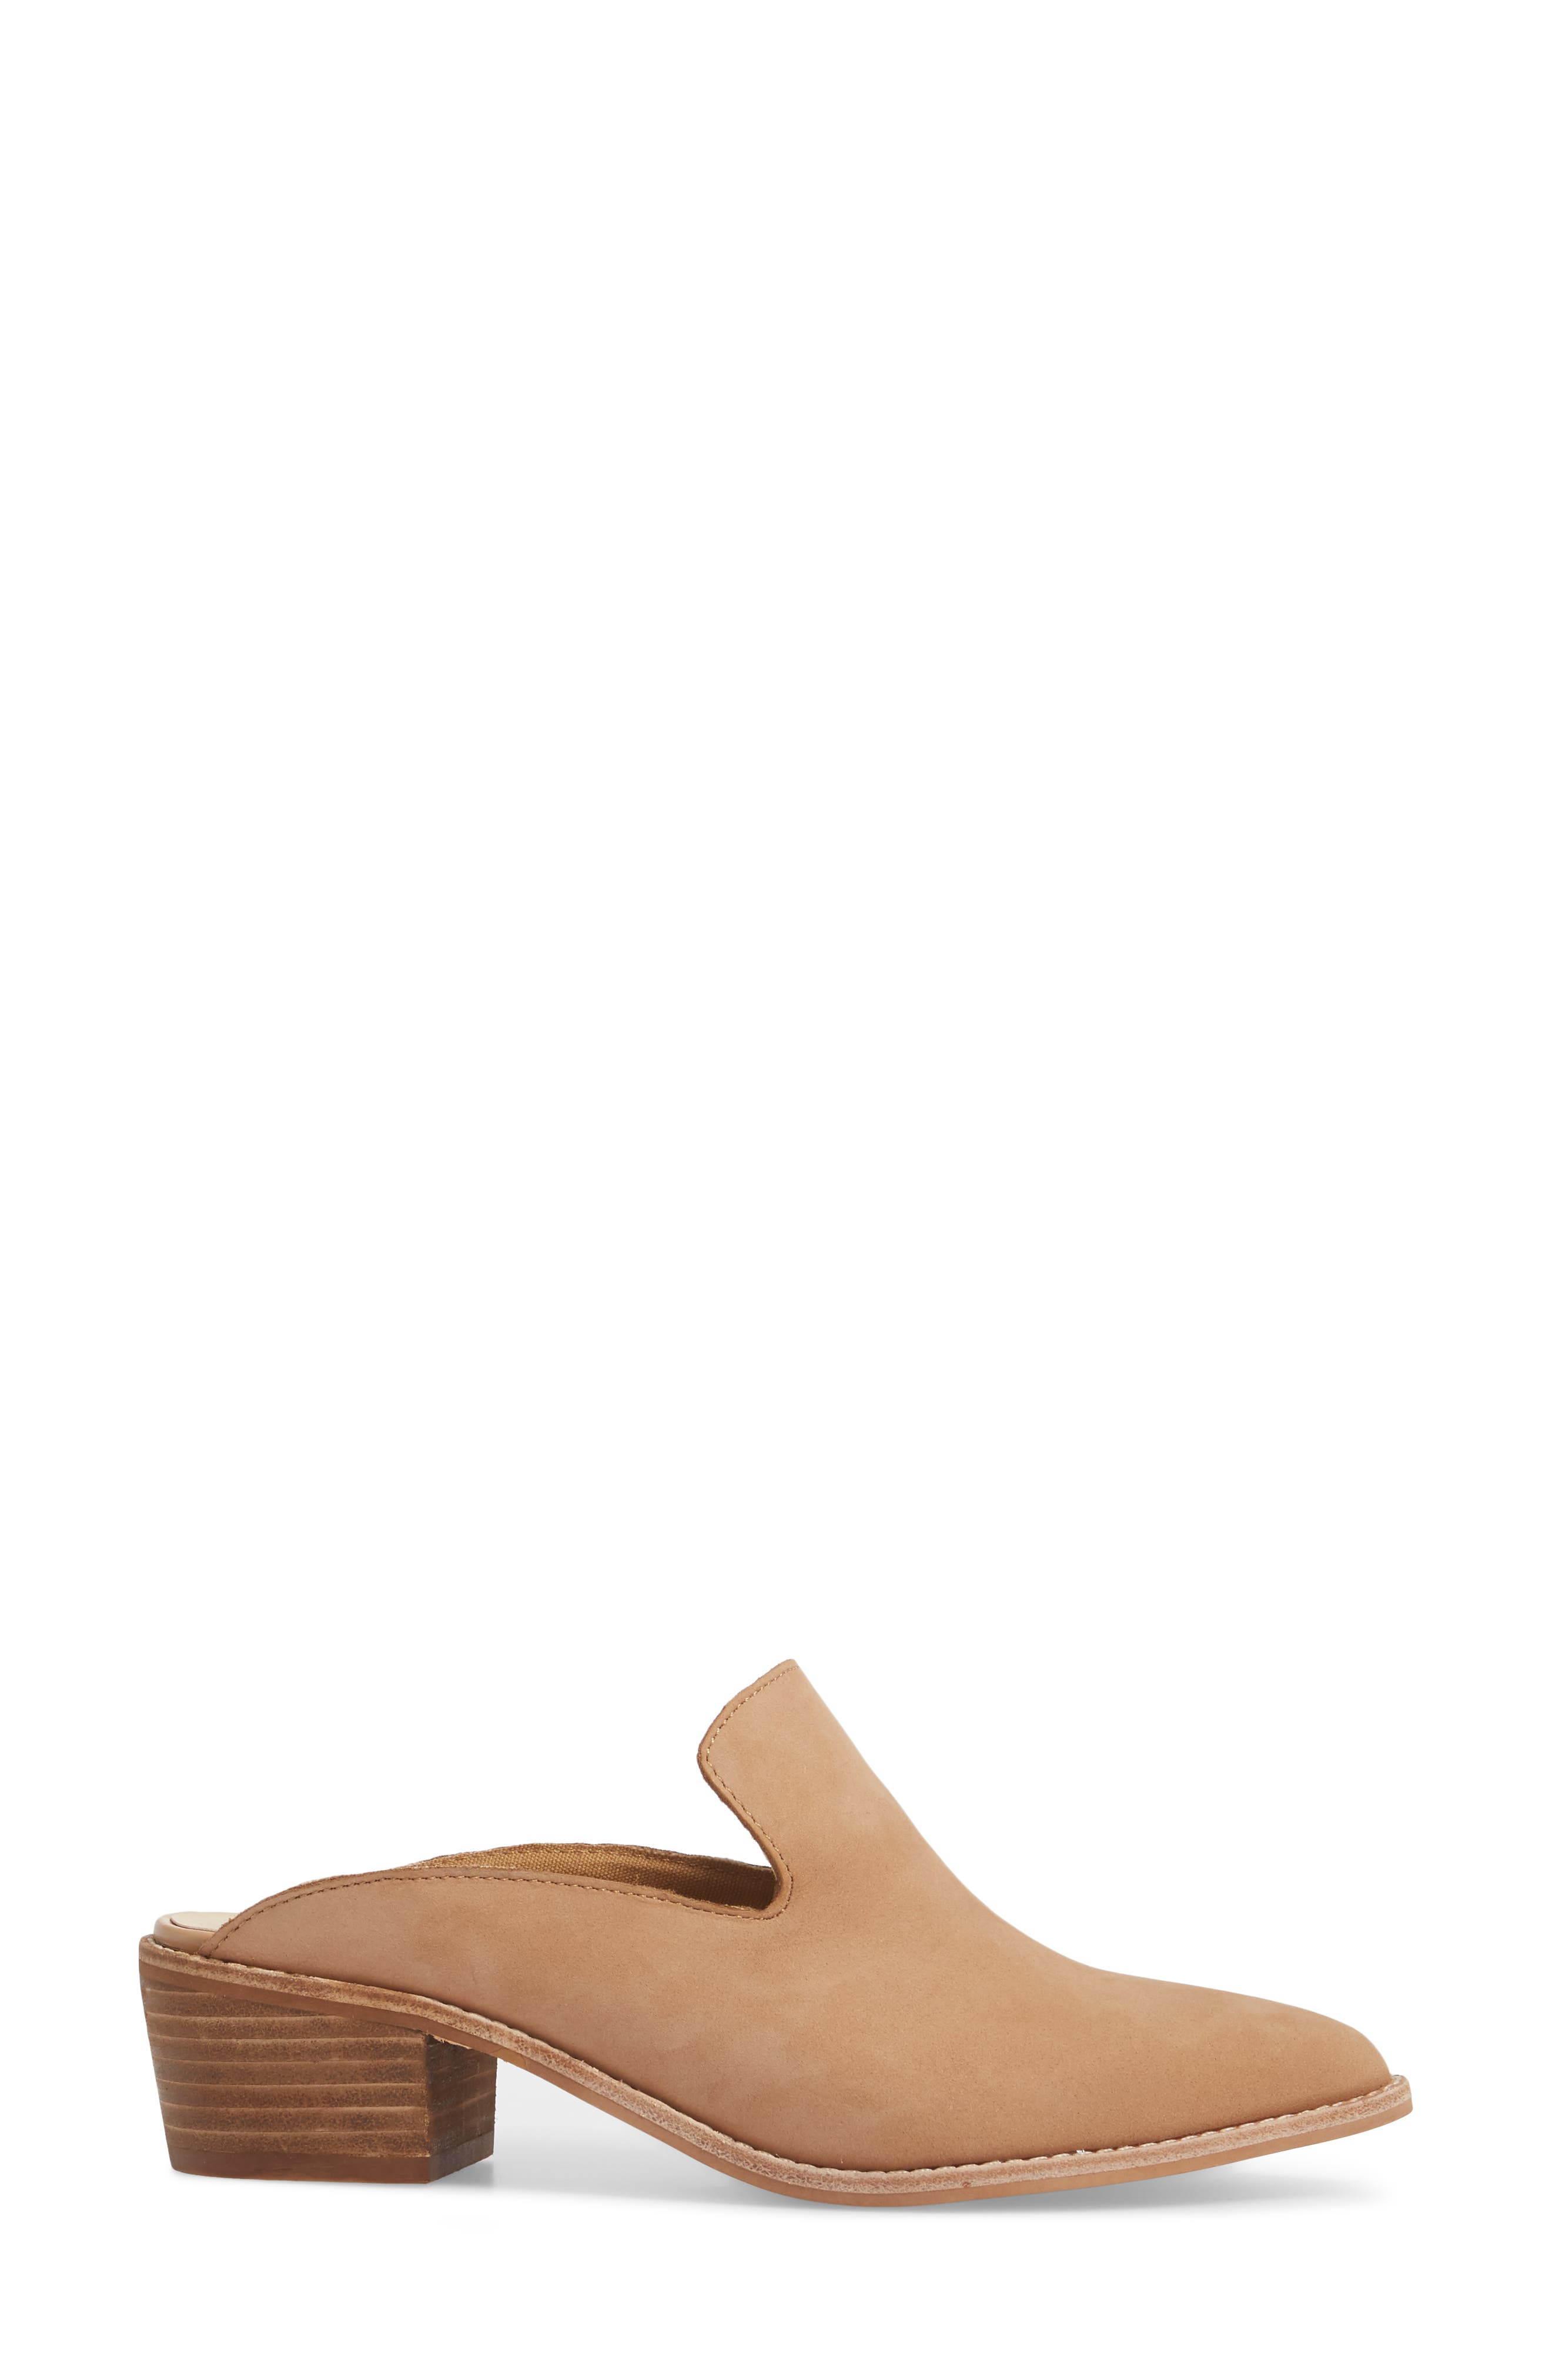 Marnie Loafer Mule,                             Alternate thumbnail 3, color,                             Natural